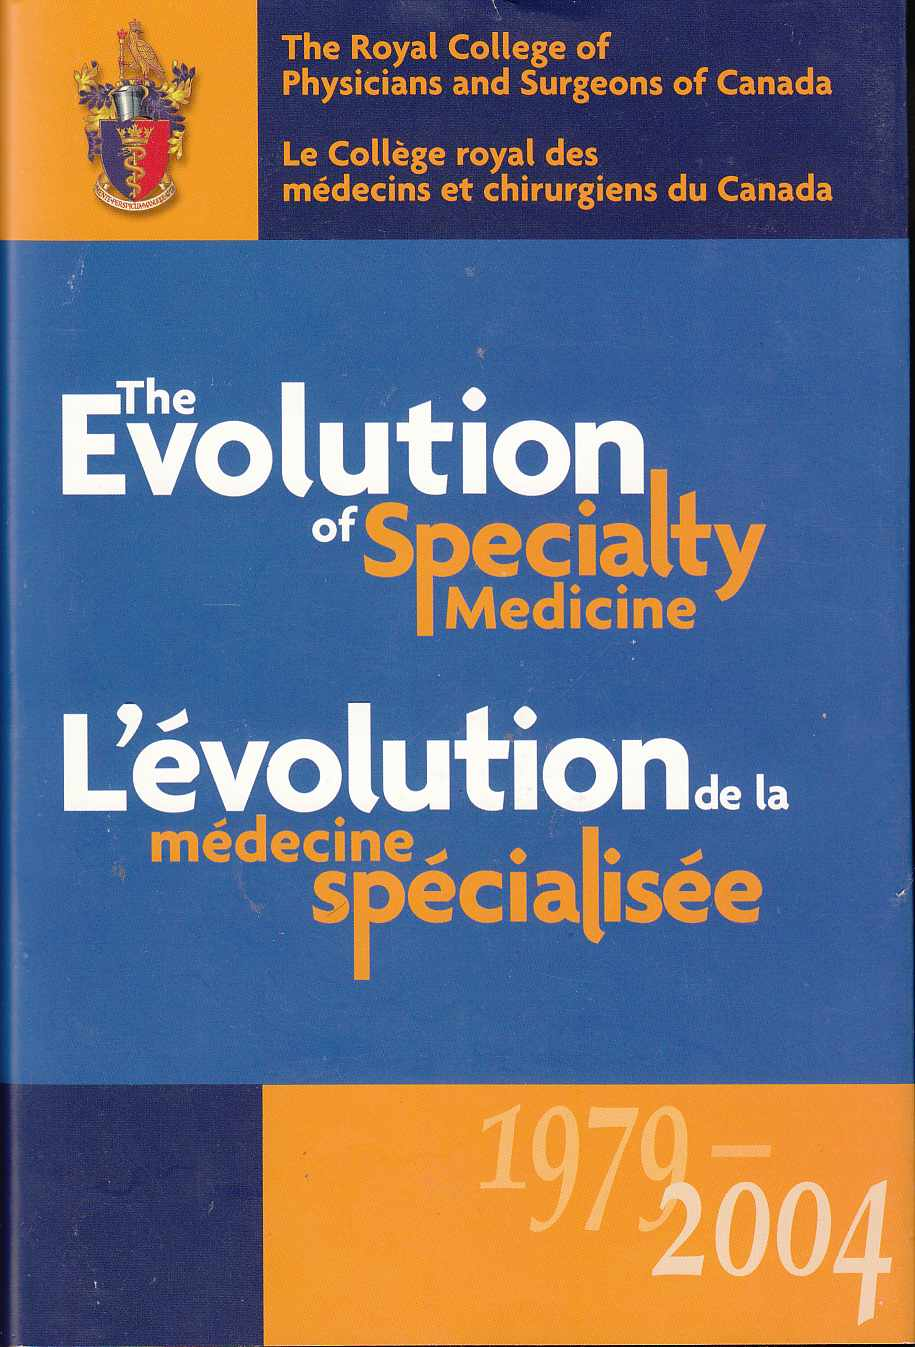 Image for The Royal College of Physicians and Surgeons of Canada: the Evolution of Specialty Medicine, 1979-2004 Le College Royal Des Medecins Et Chirugiens Du Canada: L'Evolution De La Medicine Specialisee, 1979-2004